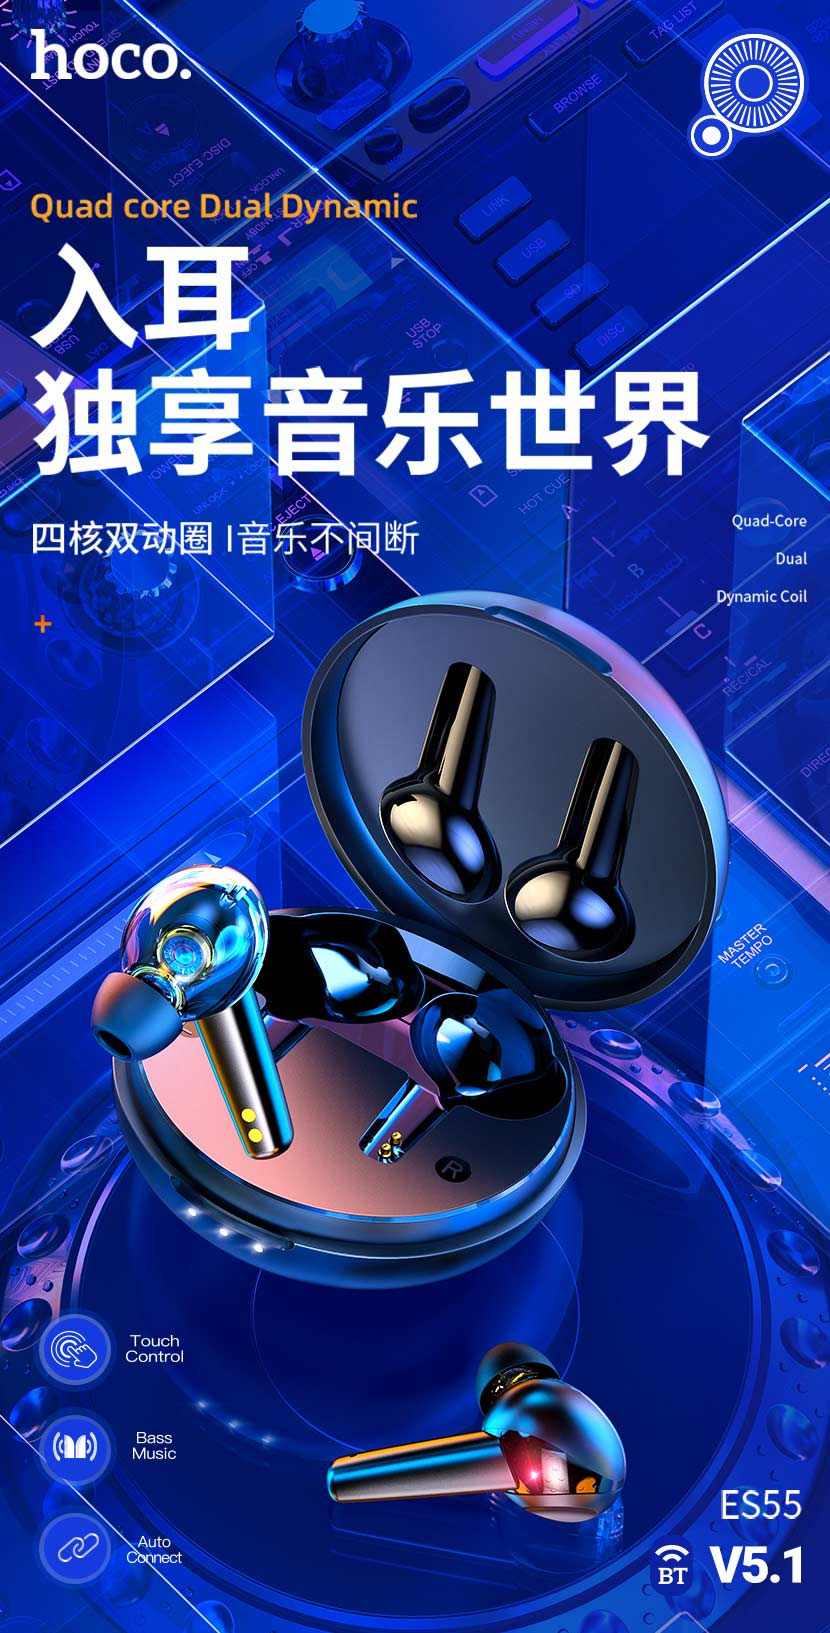 hoco news es55 songful tws dual moving coil wireless bt headset cn